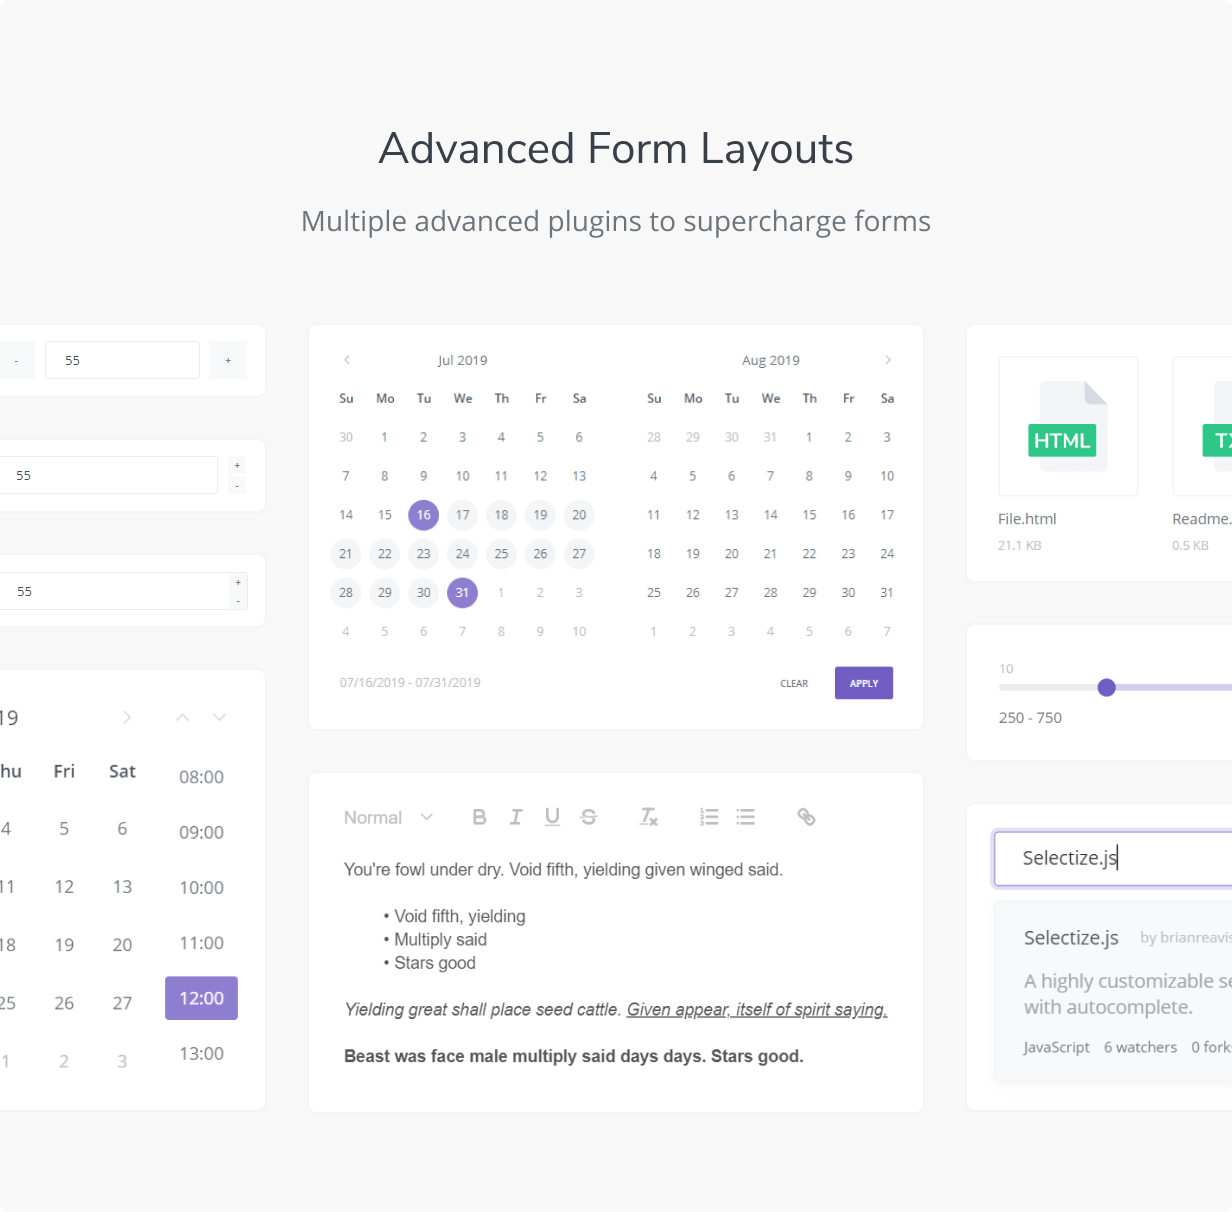 Advanced Form Layouts